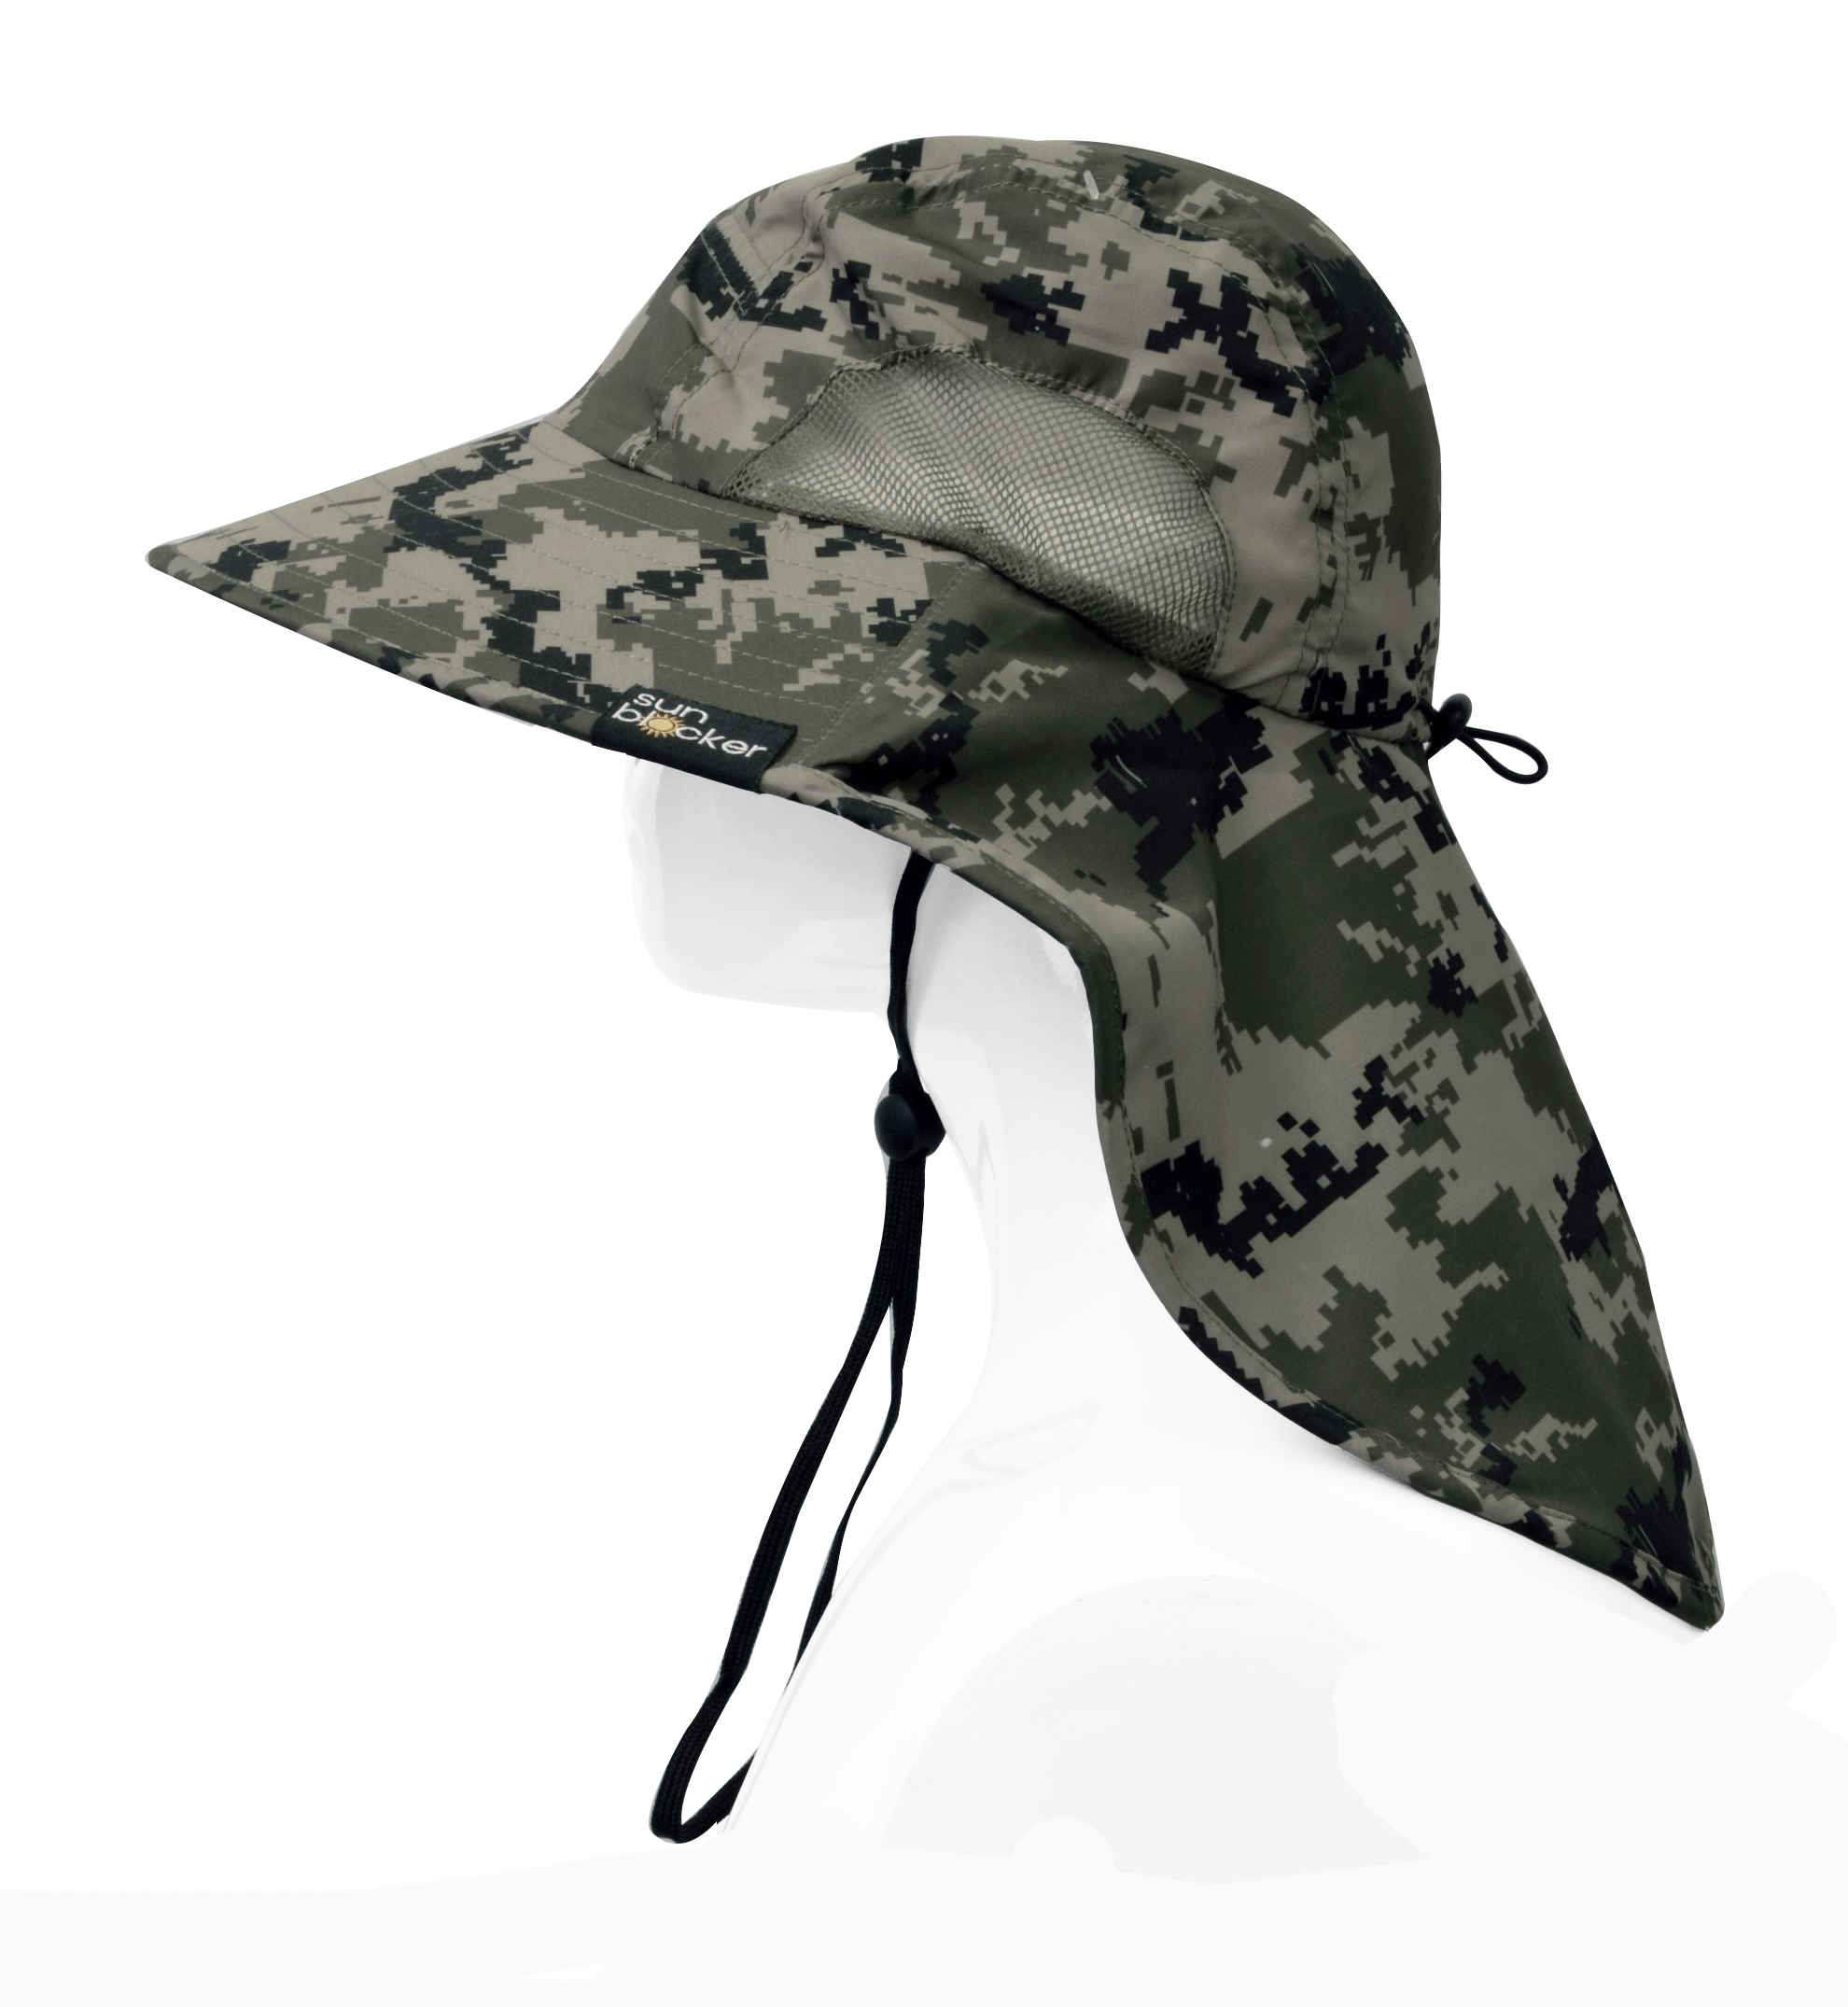 Sun-Hat-Camo-Cap-w-Wide-Brim-Ear-amp-Neck-UV-Protection-for-Fishing-Camping-Hiking thumbnail 9